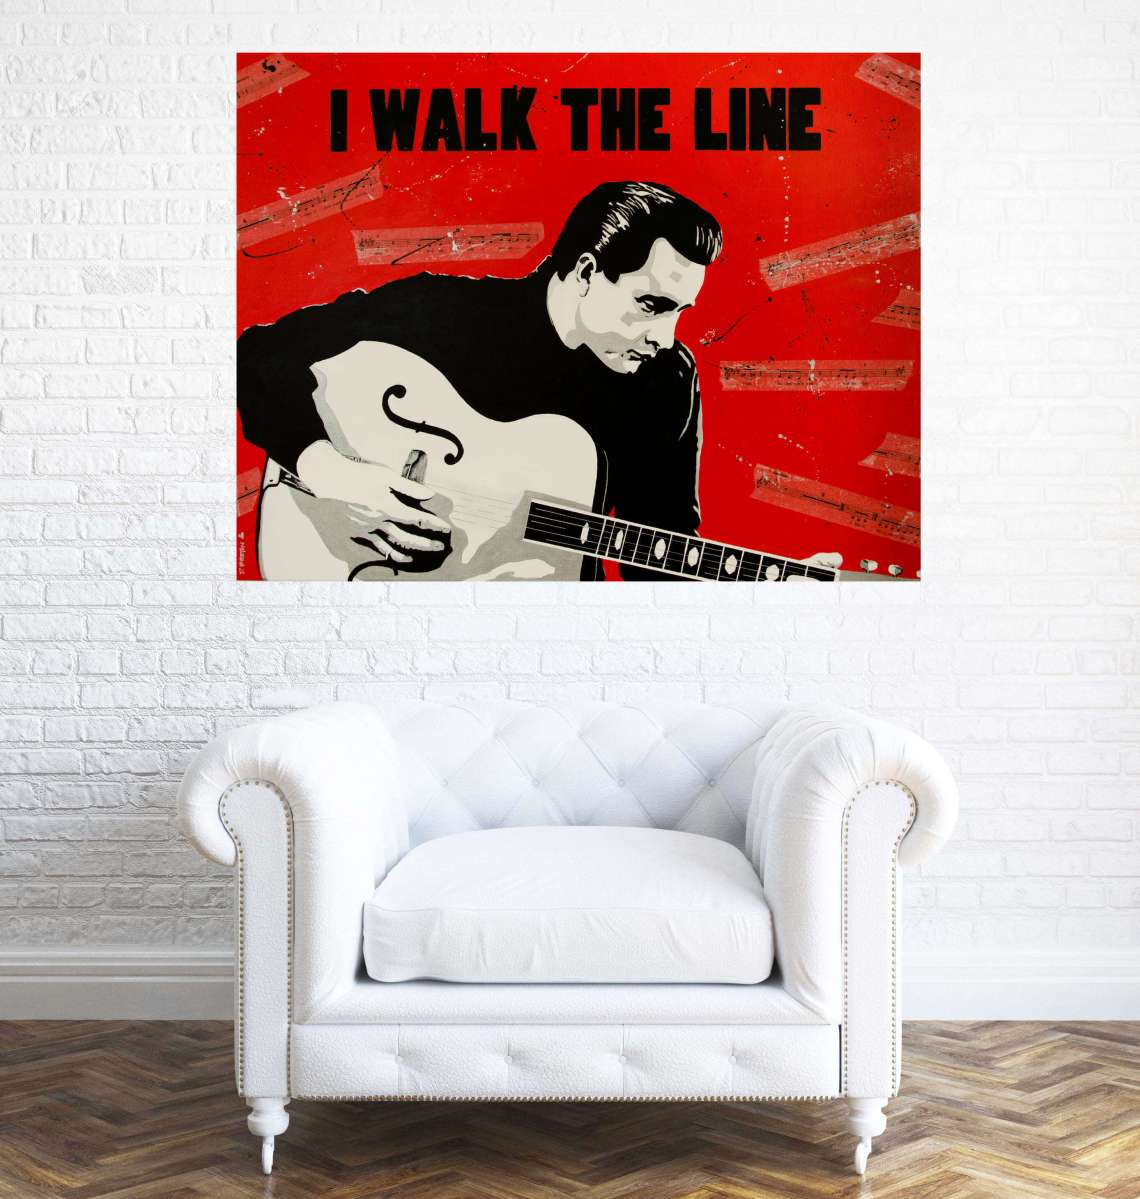 Johnny Cash Painting - I WALK THE LINE, in situ.